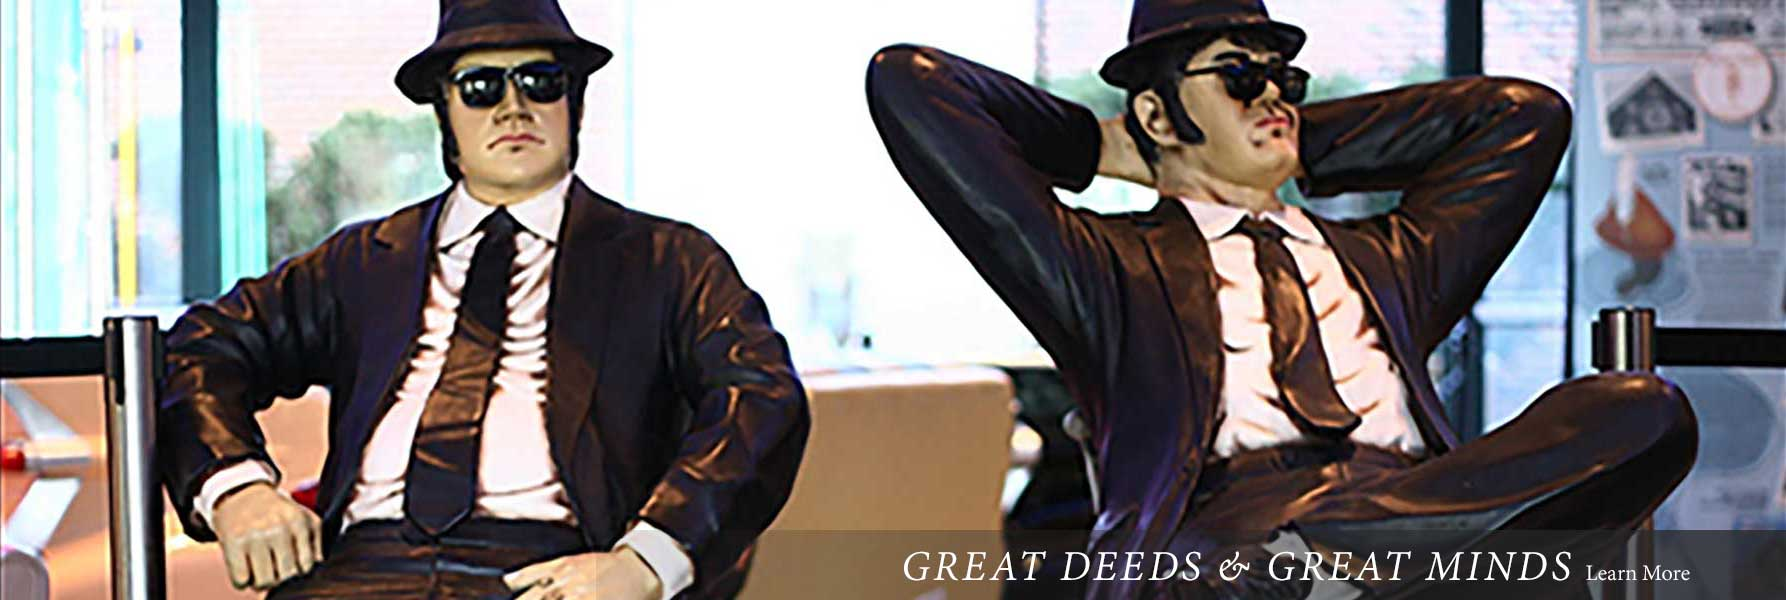 Great-Deeds-Teaser